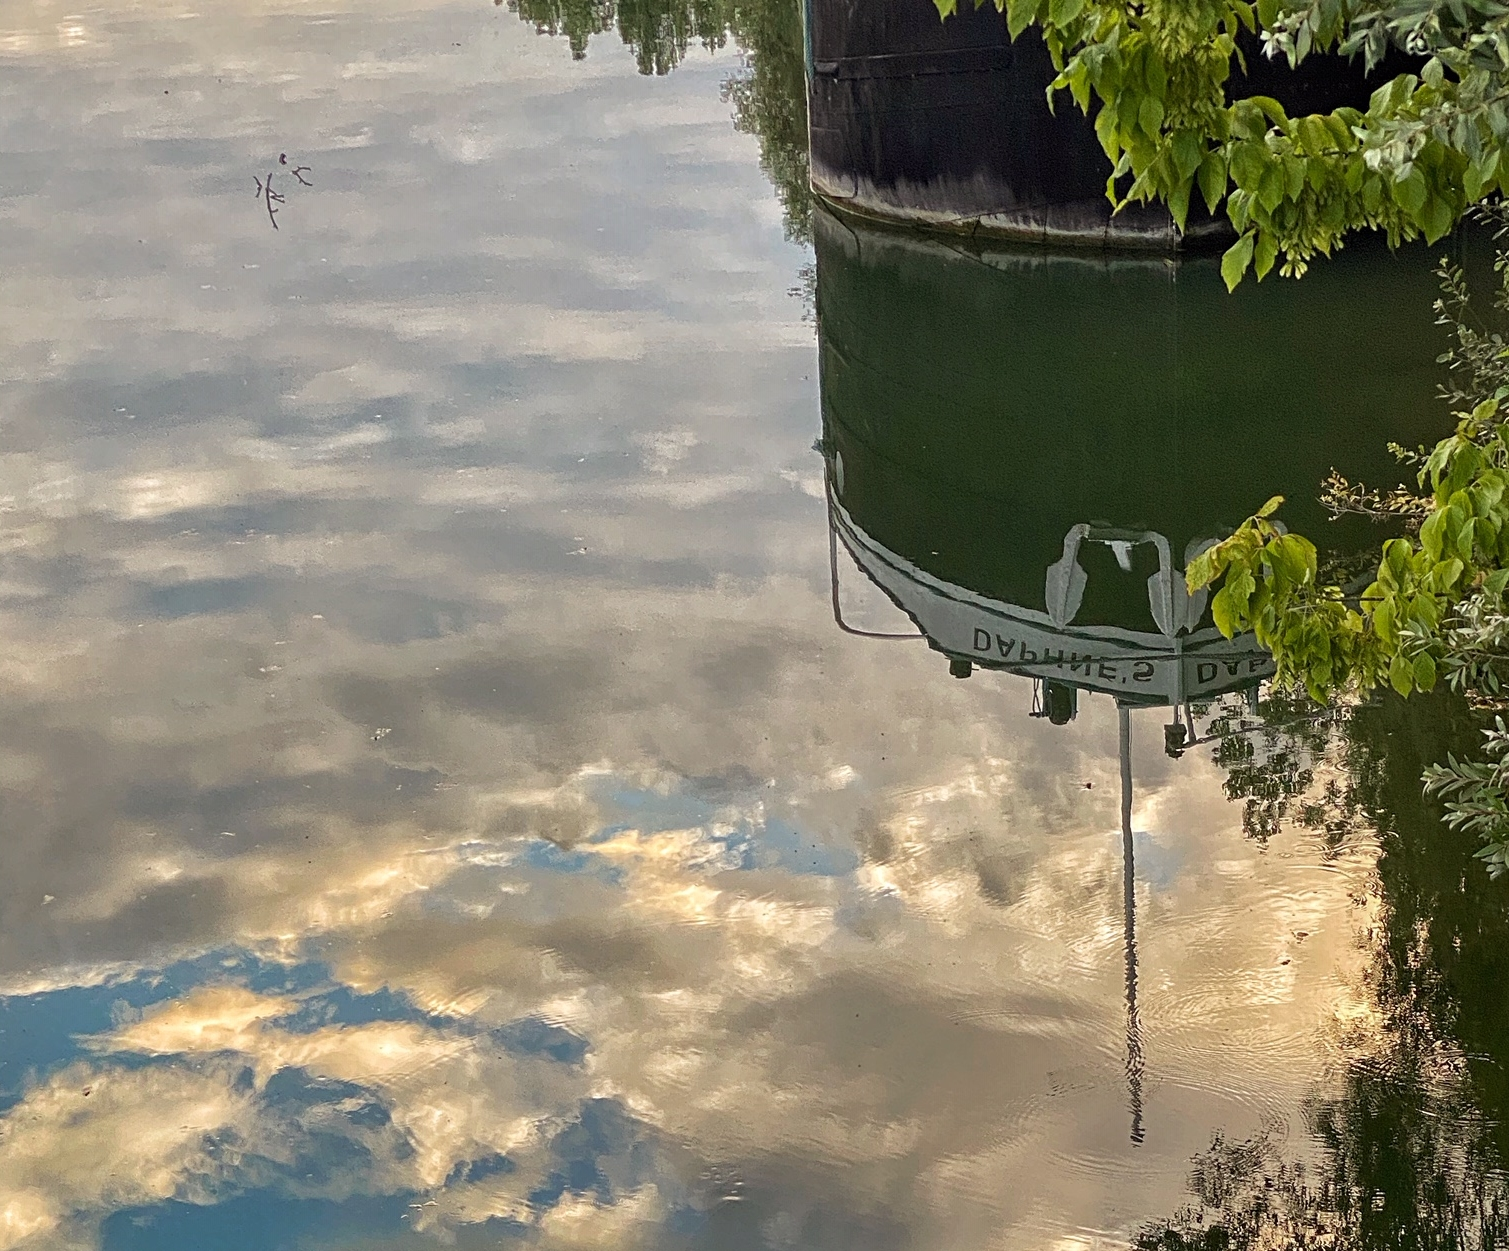 Reflections of the Péniche Daphne's in the Oise